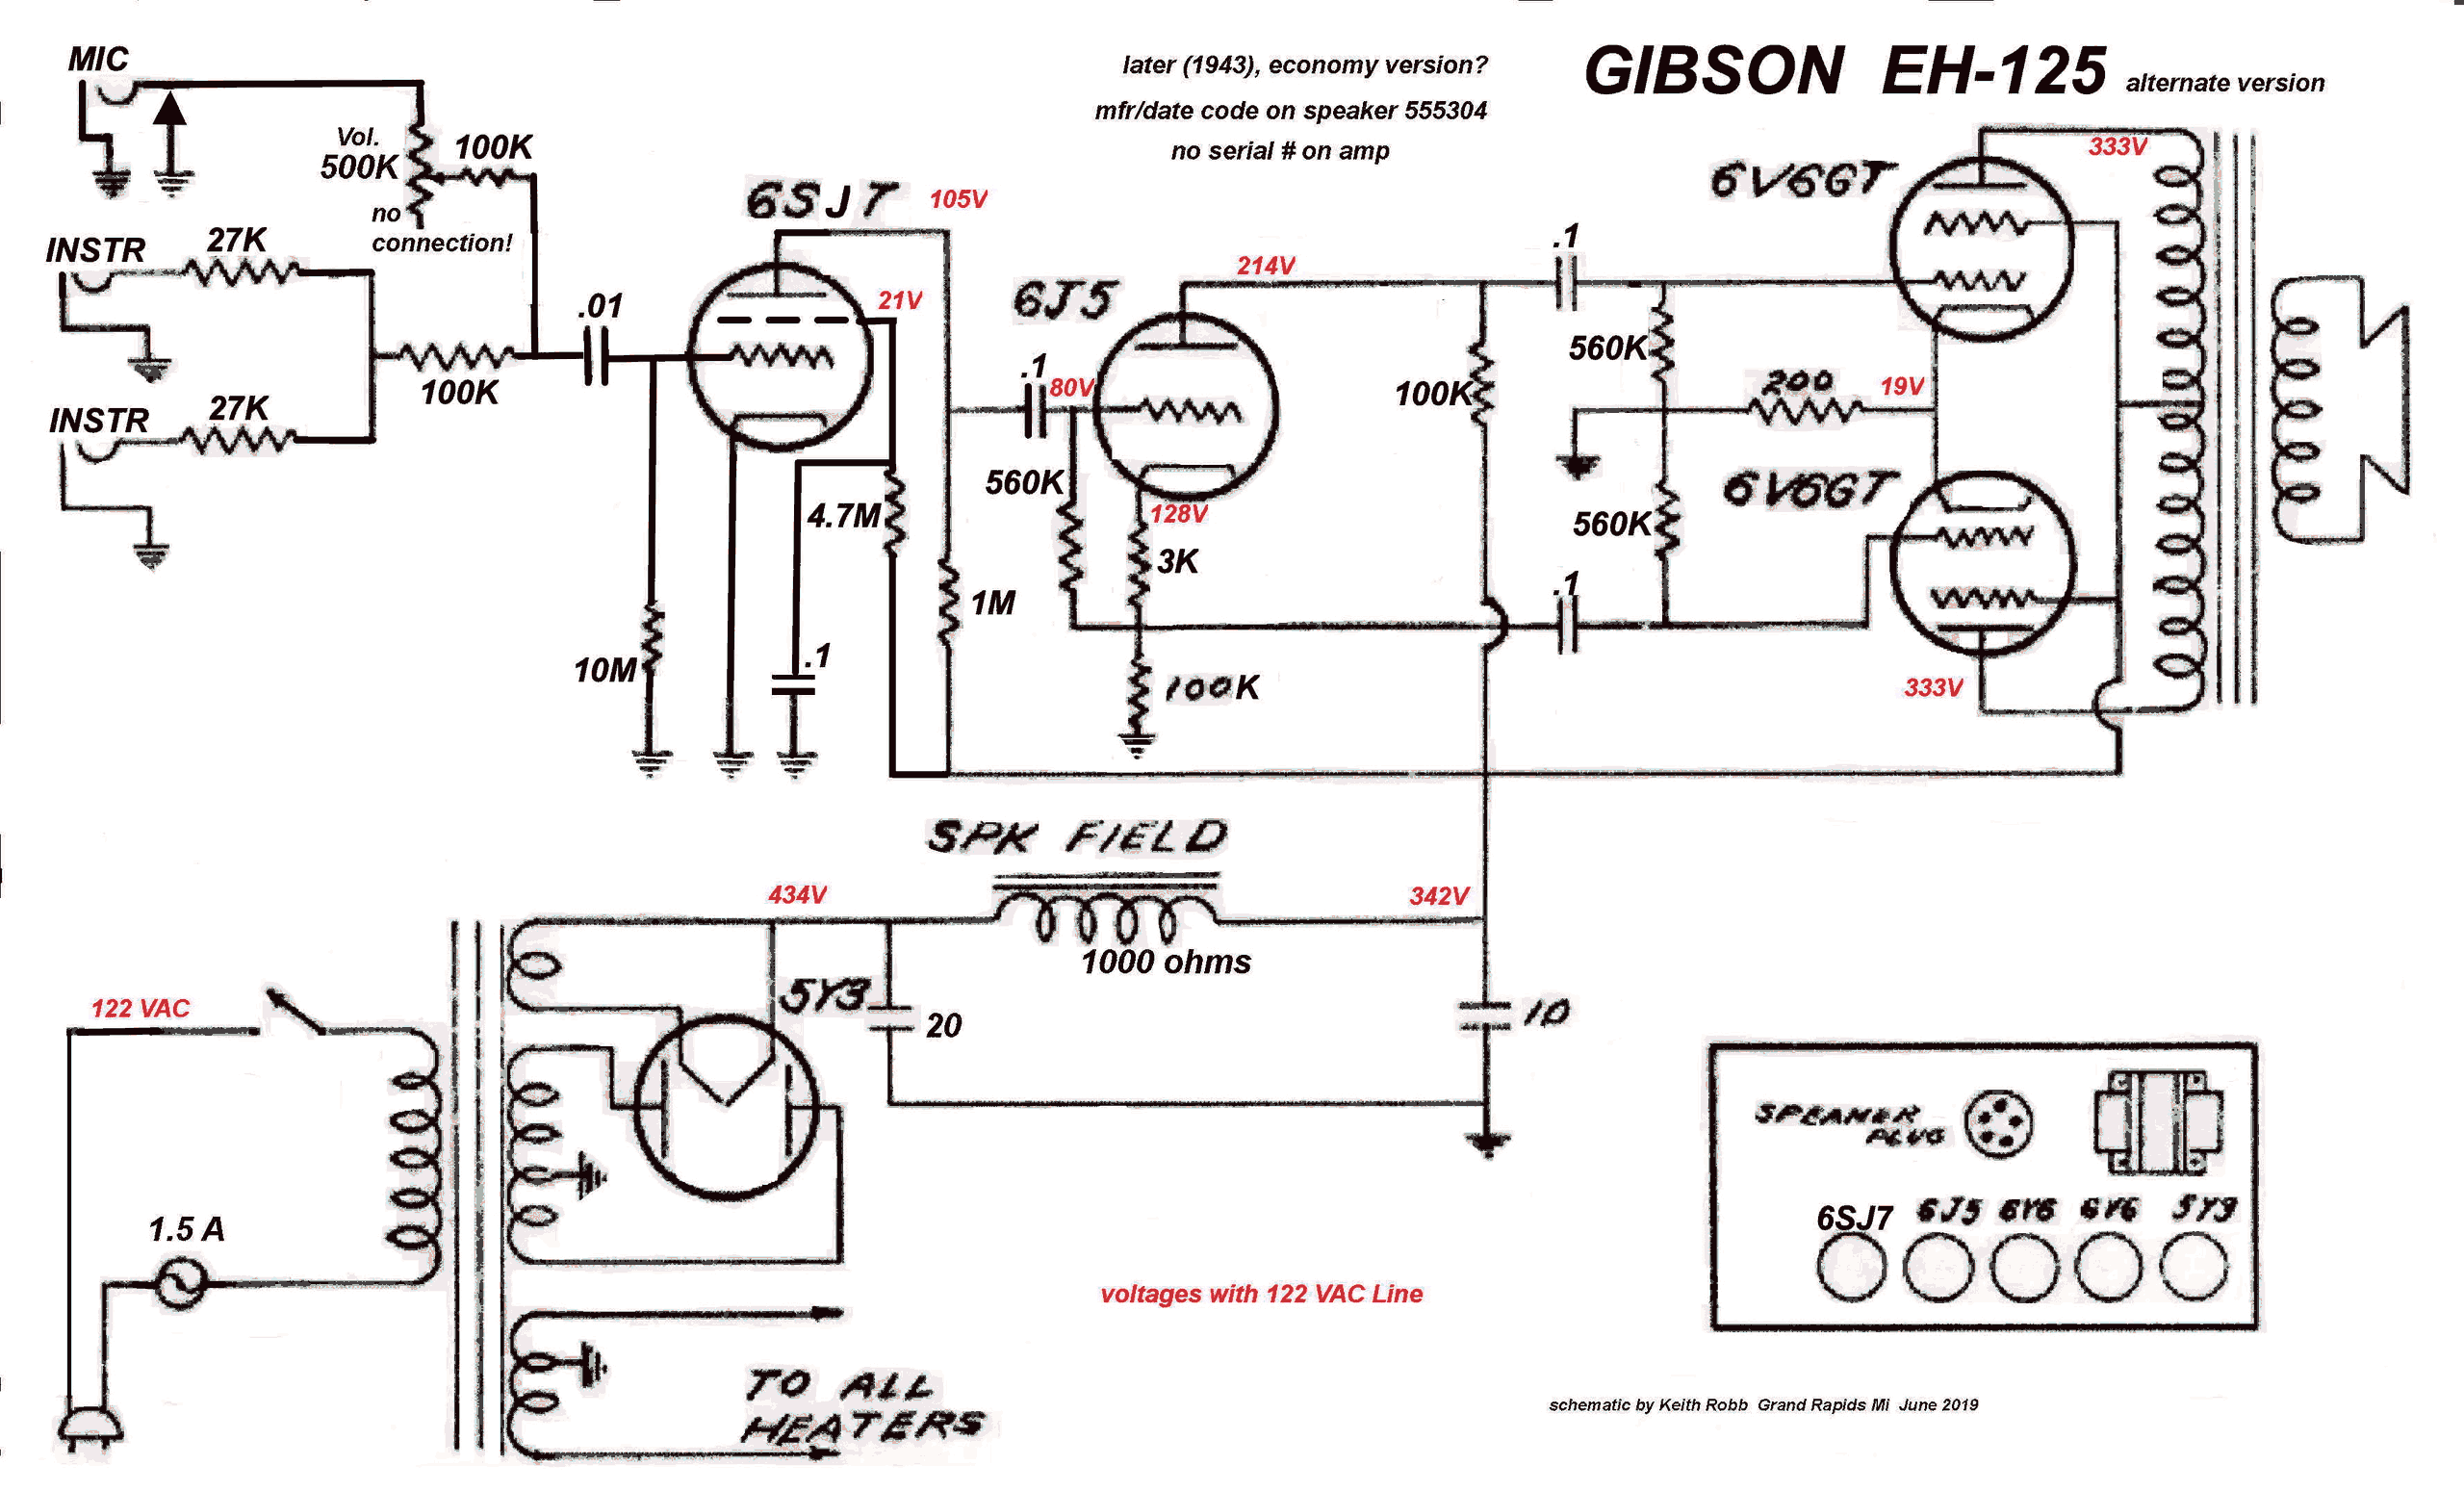 Gibson_EH-125_%20later_%20version.png